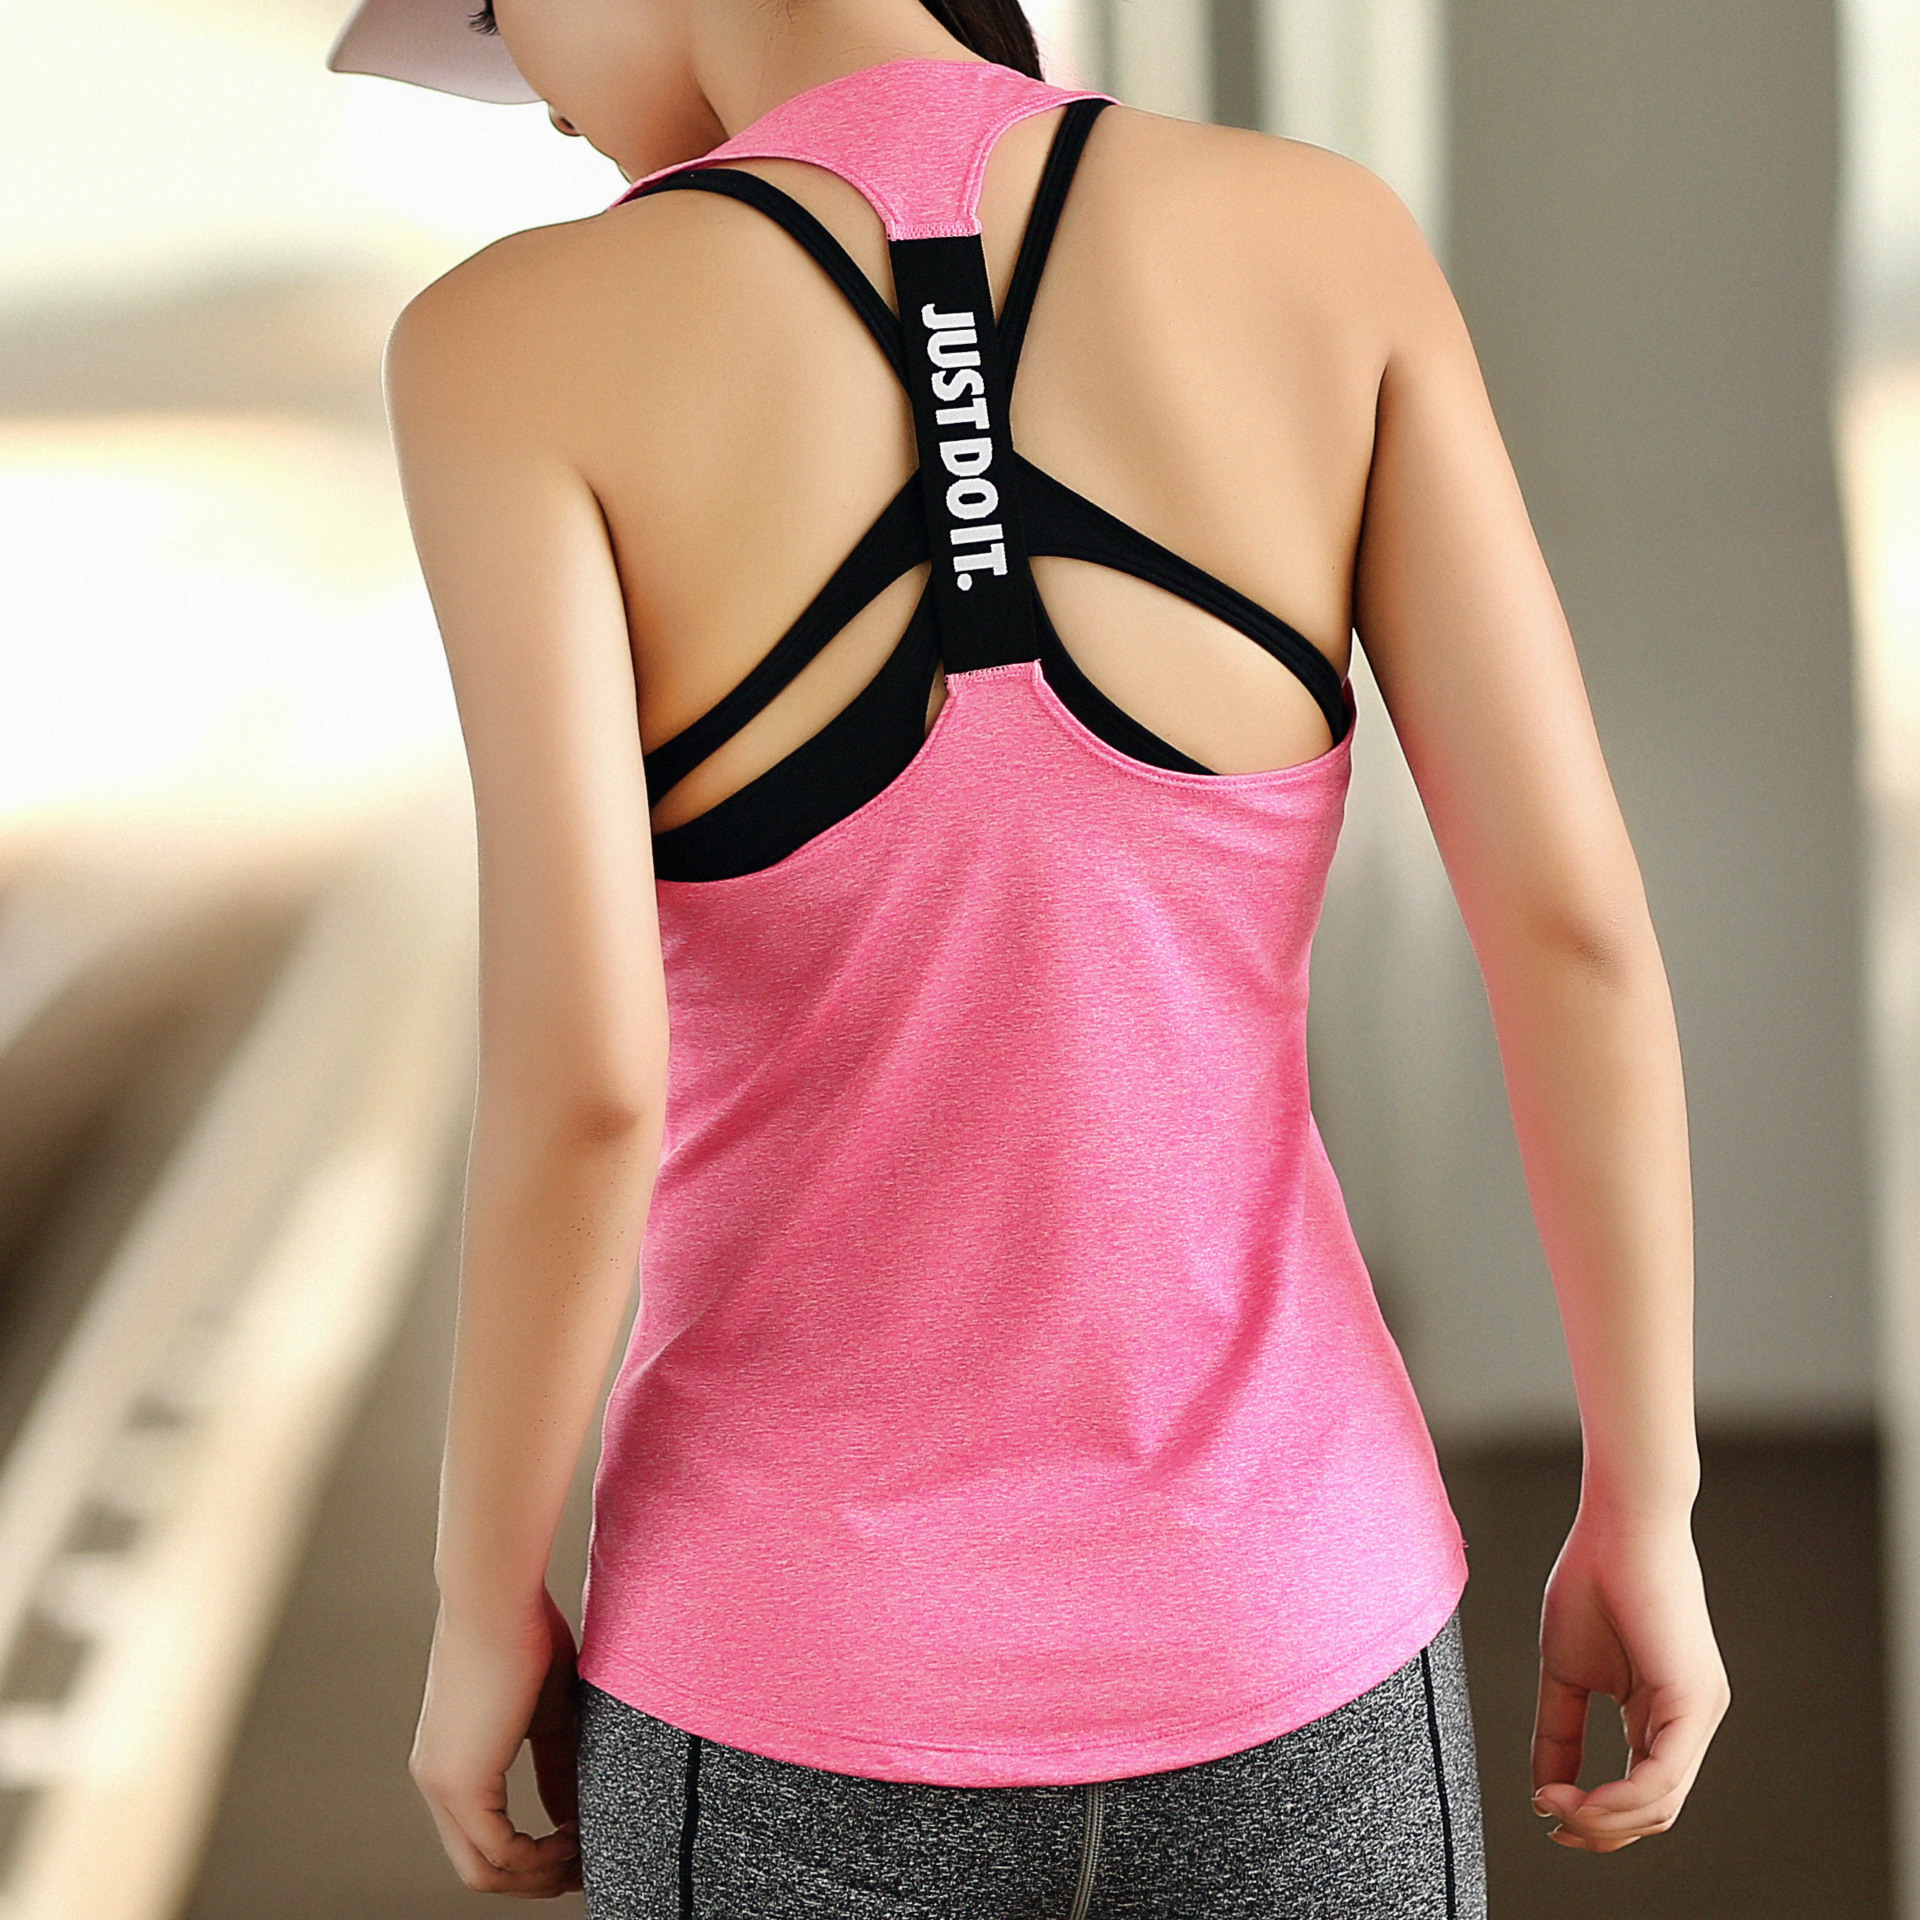 Yoga Vest Girl Elastic And Quick-drying Sweat-absorbent Small Blouse Was Thin Sports Running Fitness Clothes Aerobics T-shirt